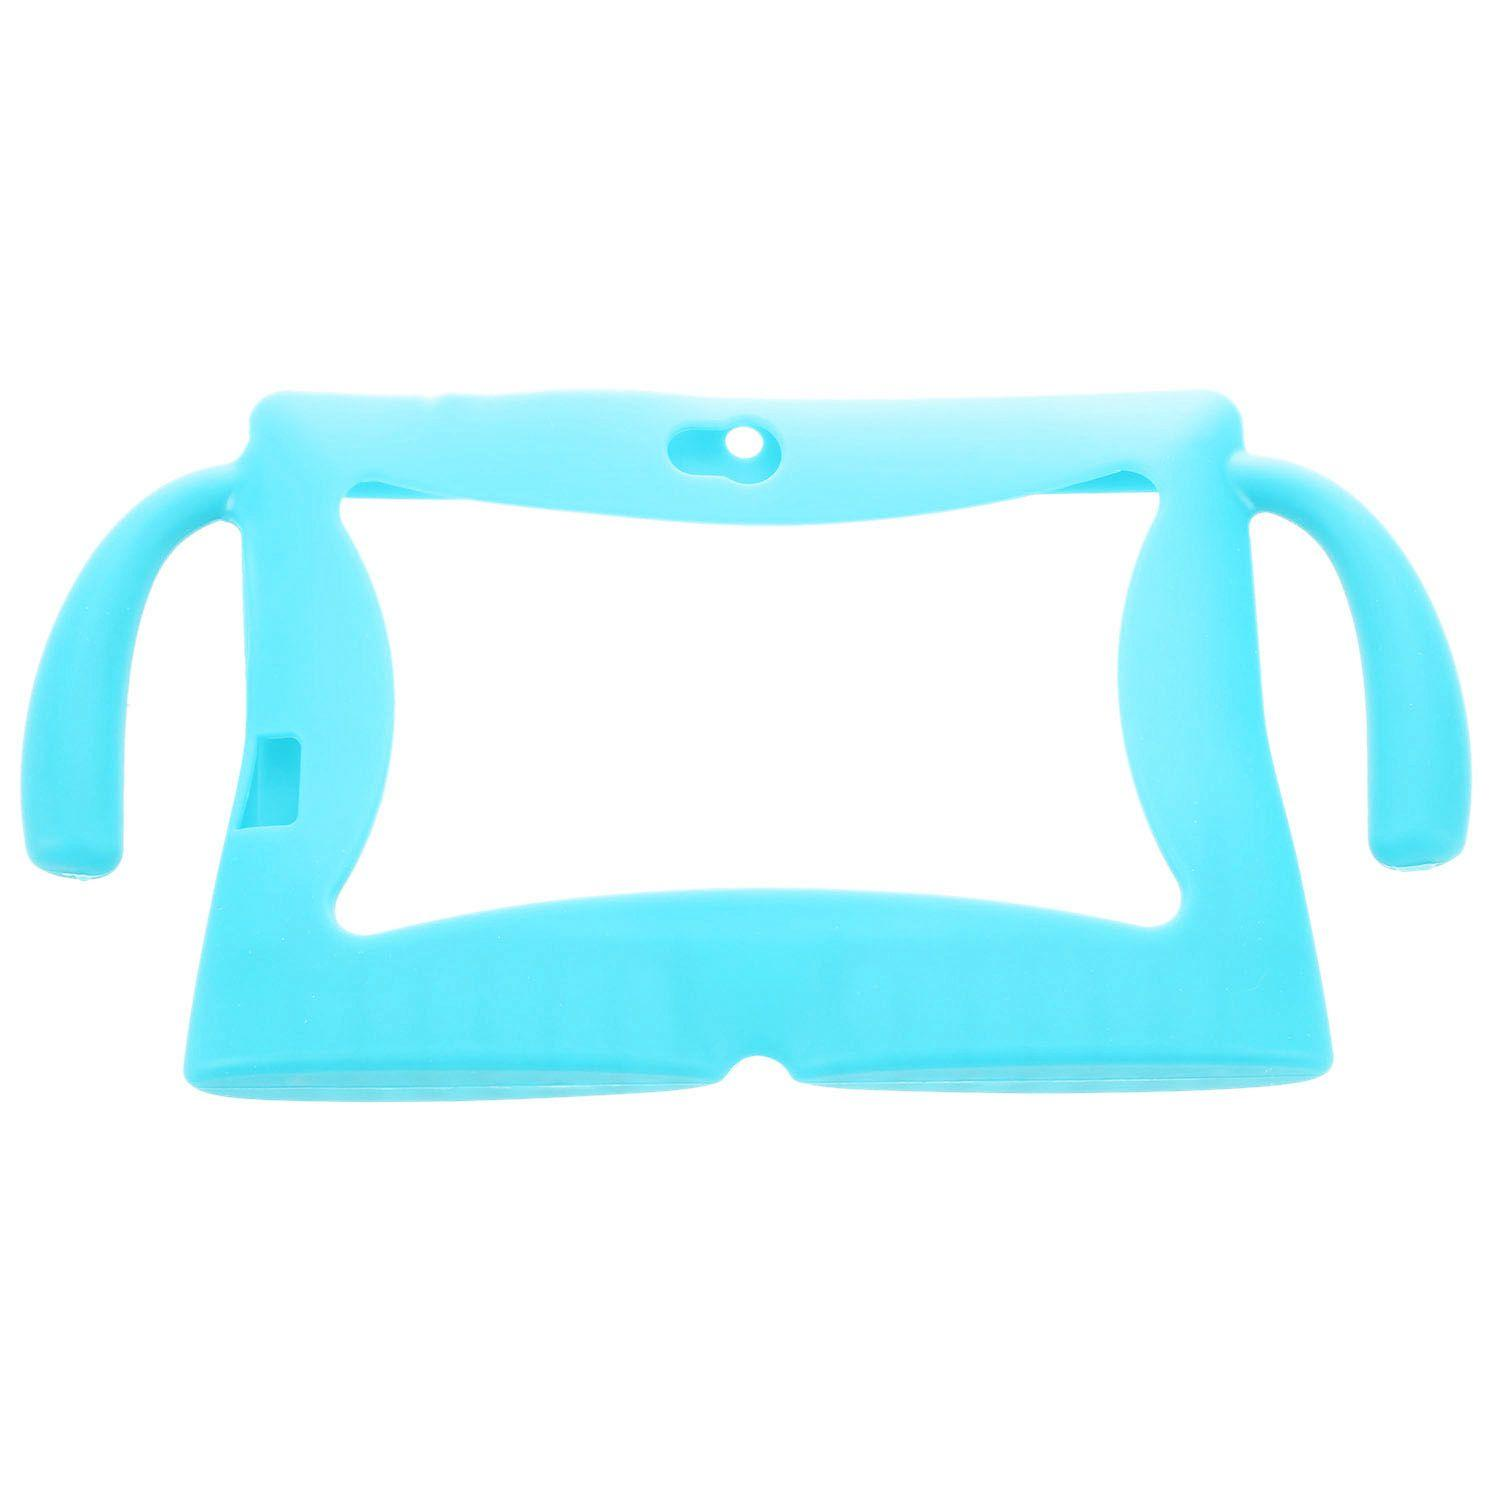 7 Inch Soft Silicone Gel Cover Case For Q88 Android Kids Children Tablet Pc A13 Sky Blue By Jwerlyday.